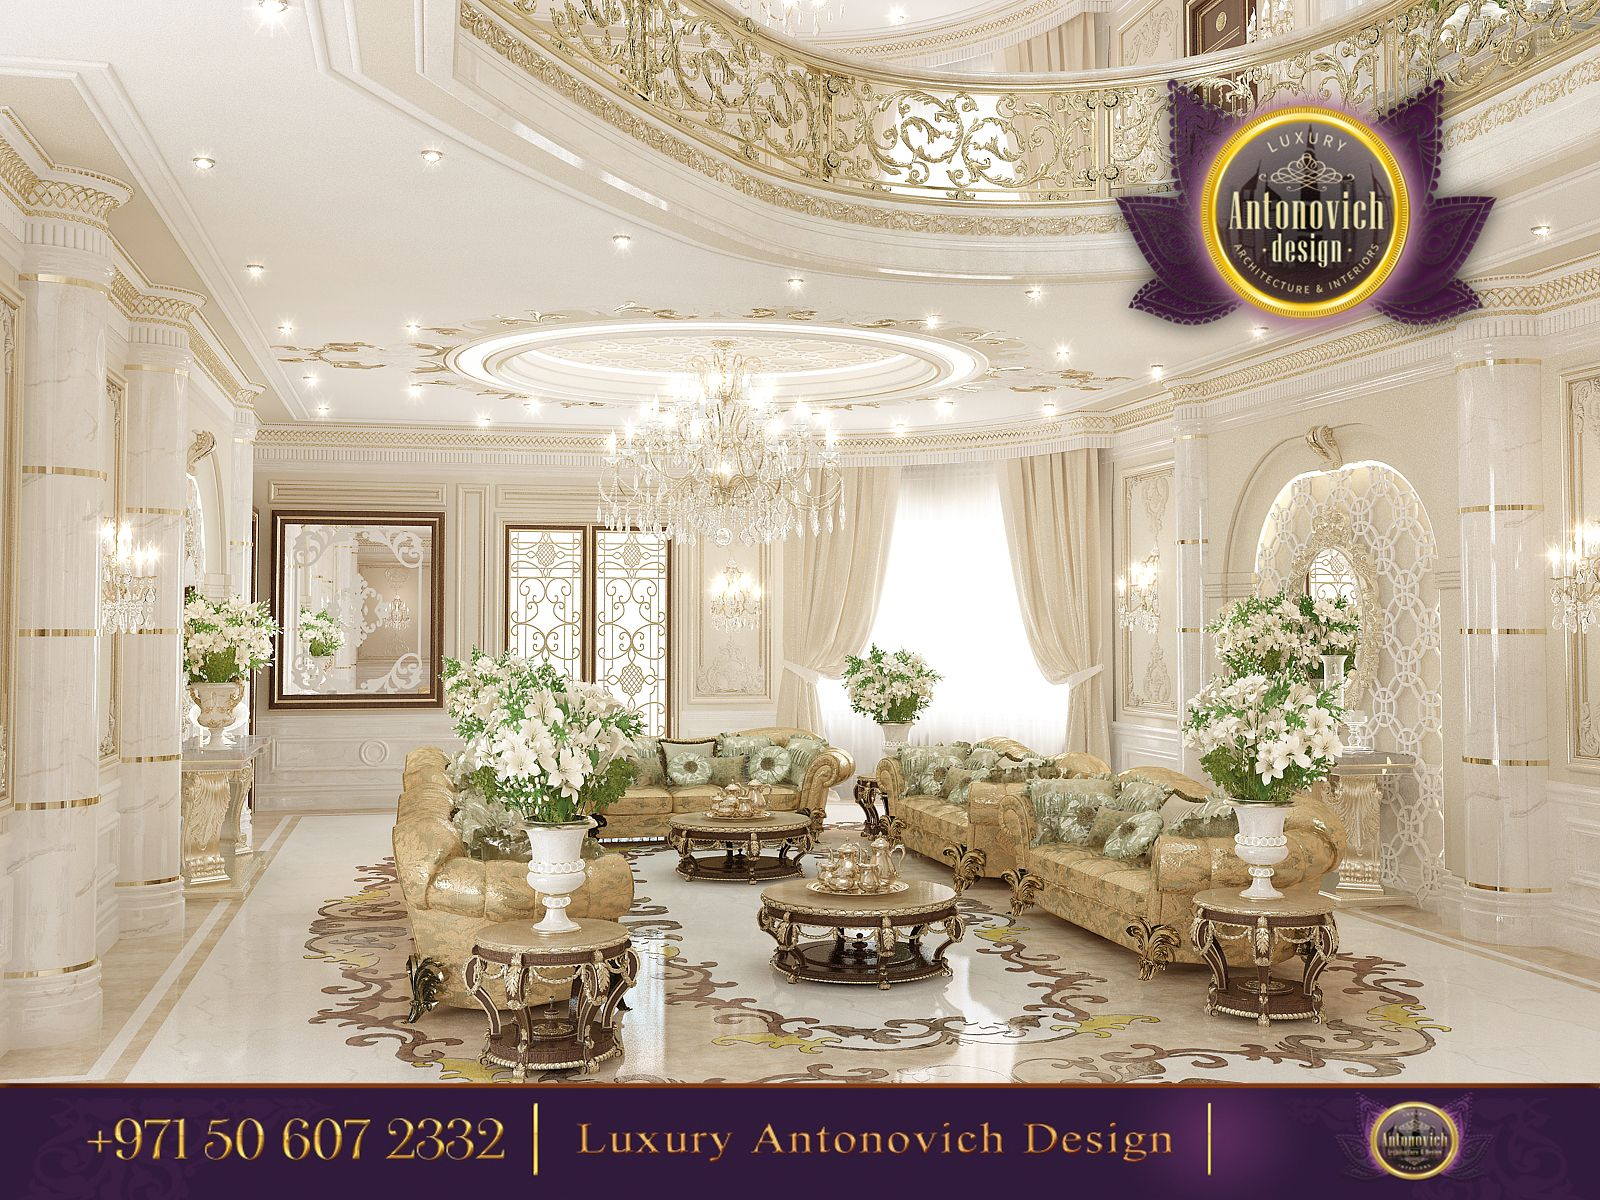 You can have a look at our lavish women majlis designs in the gallery - Luxury Living Room Design Antonovich Design Ae